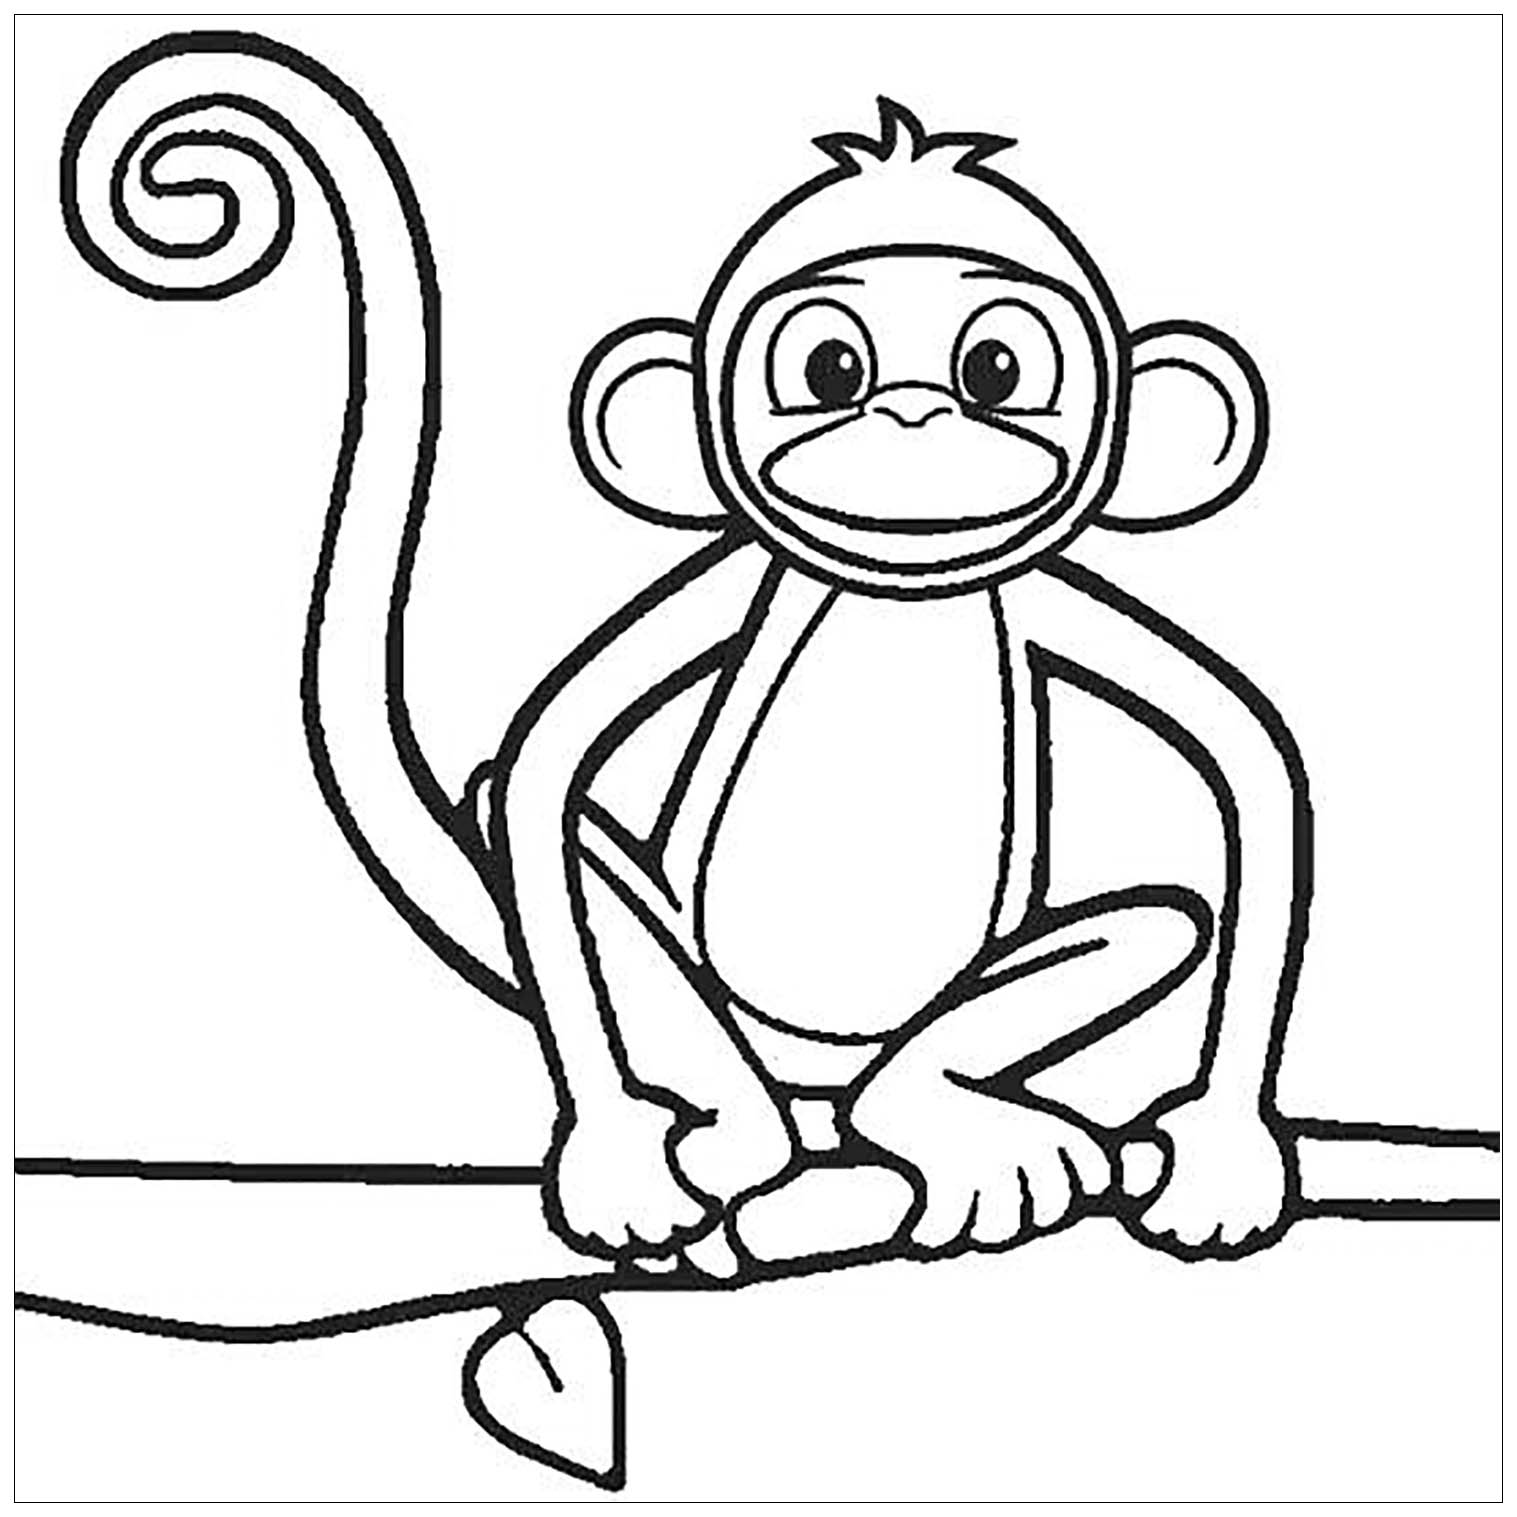 monkey coloring pictures easy and hard coloring pages of monkeys 101 activity pictures coloring monkey